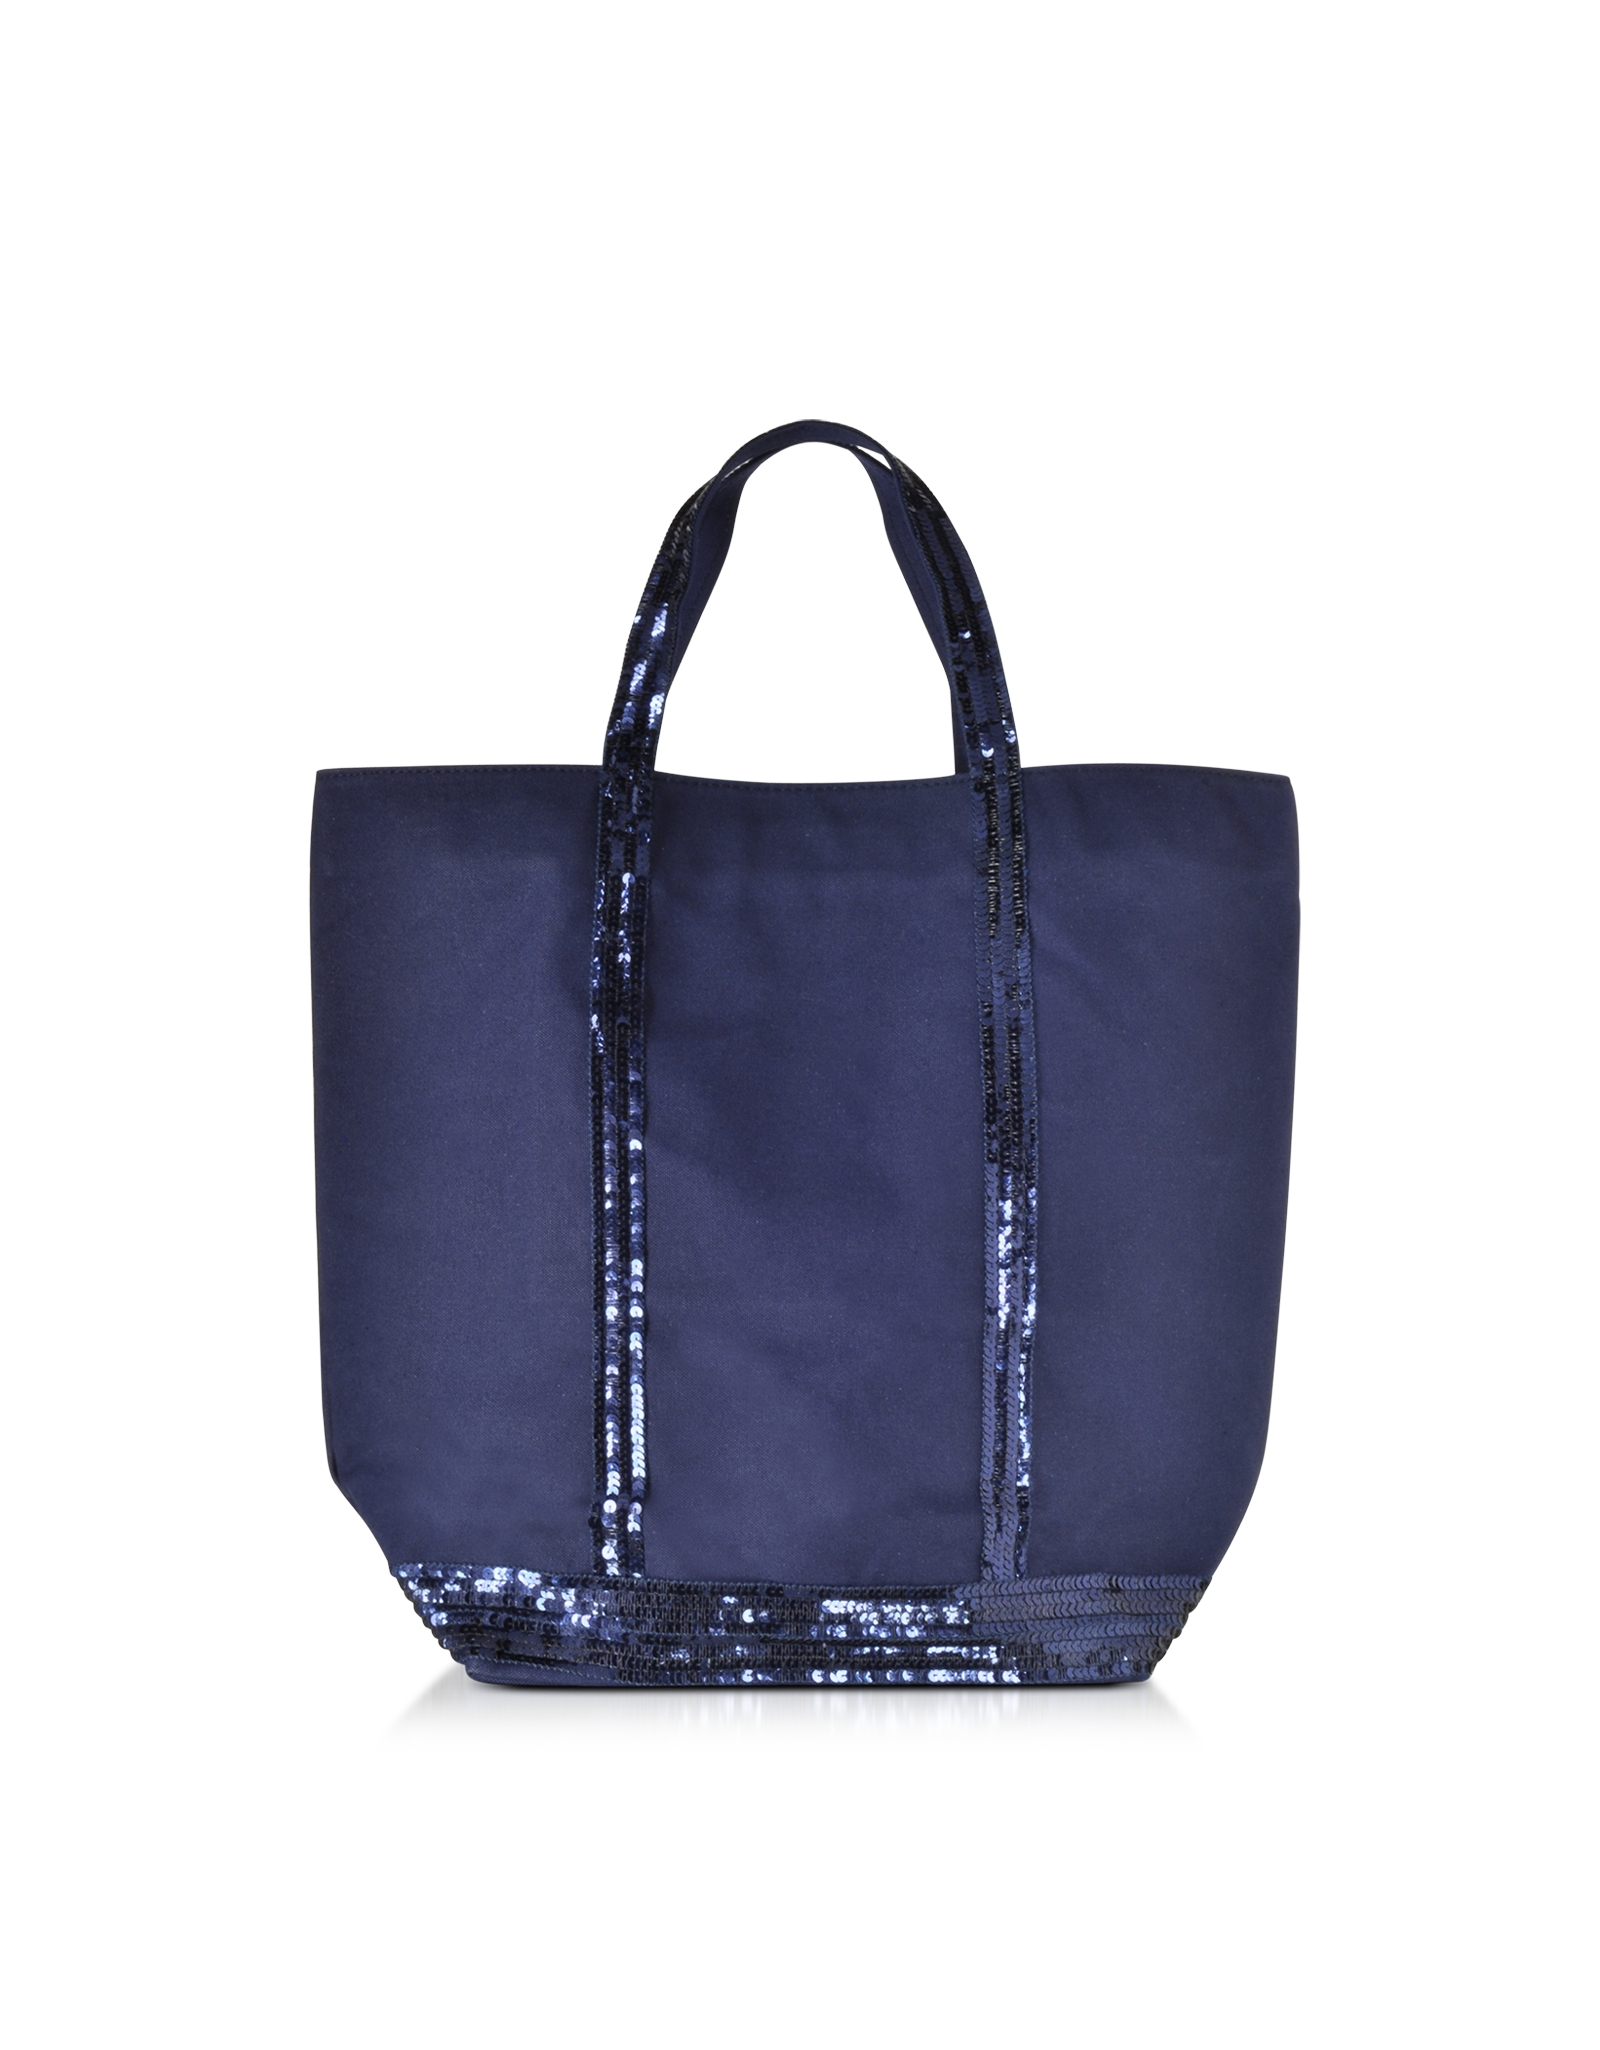 lyst vanessa bruno les cabas nord sud cotton and sequins tote in blue. Black Bedroom Furniture Sets. Home Design Ideas